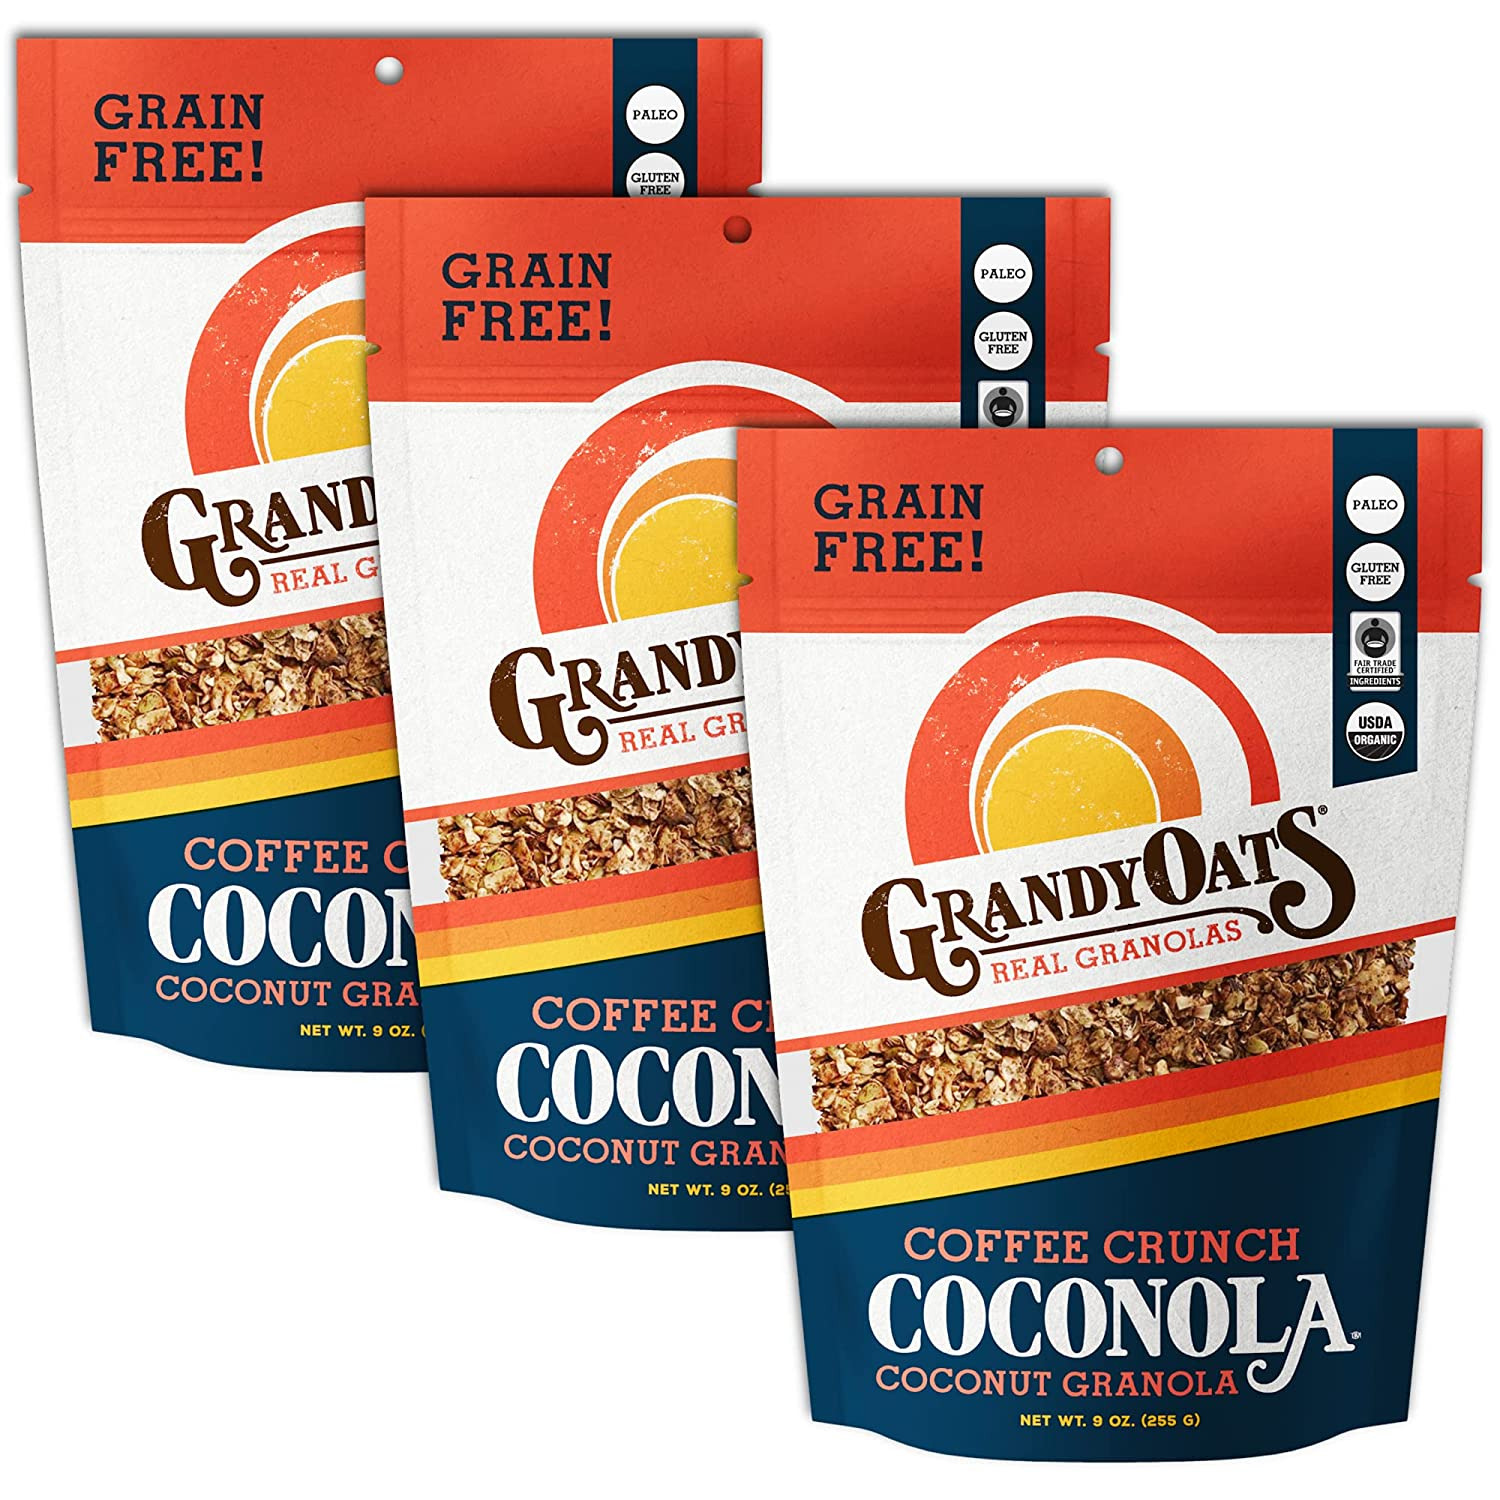 GrandyOats Coffee Crunch Coconola Gluten Certifie Credence Free Cheap mail order specialty store Granola -